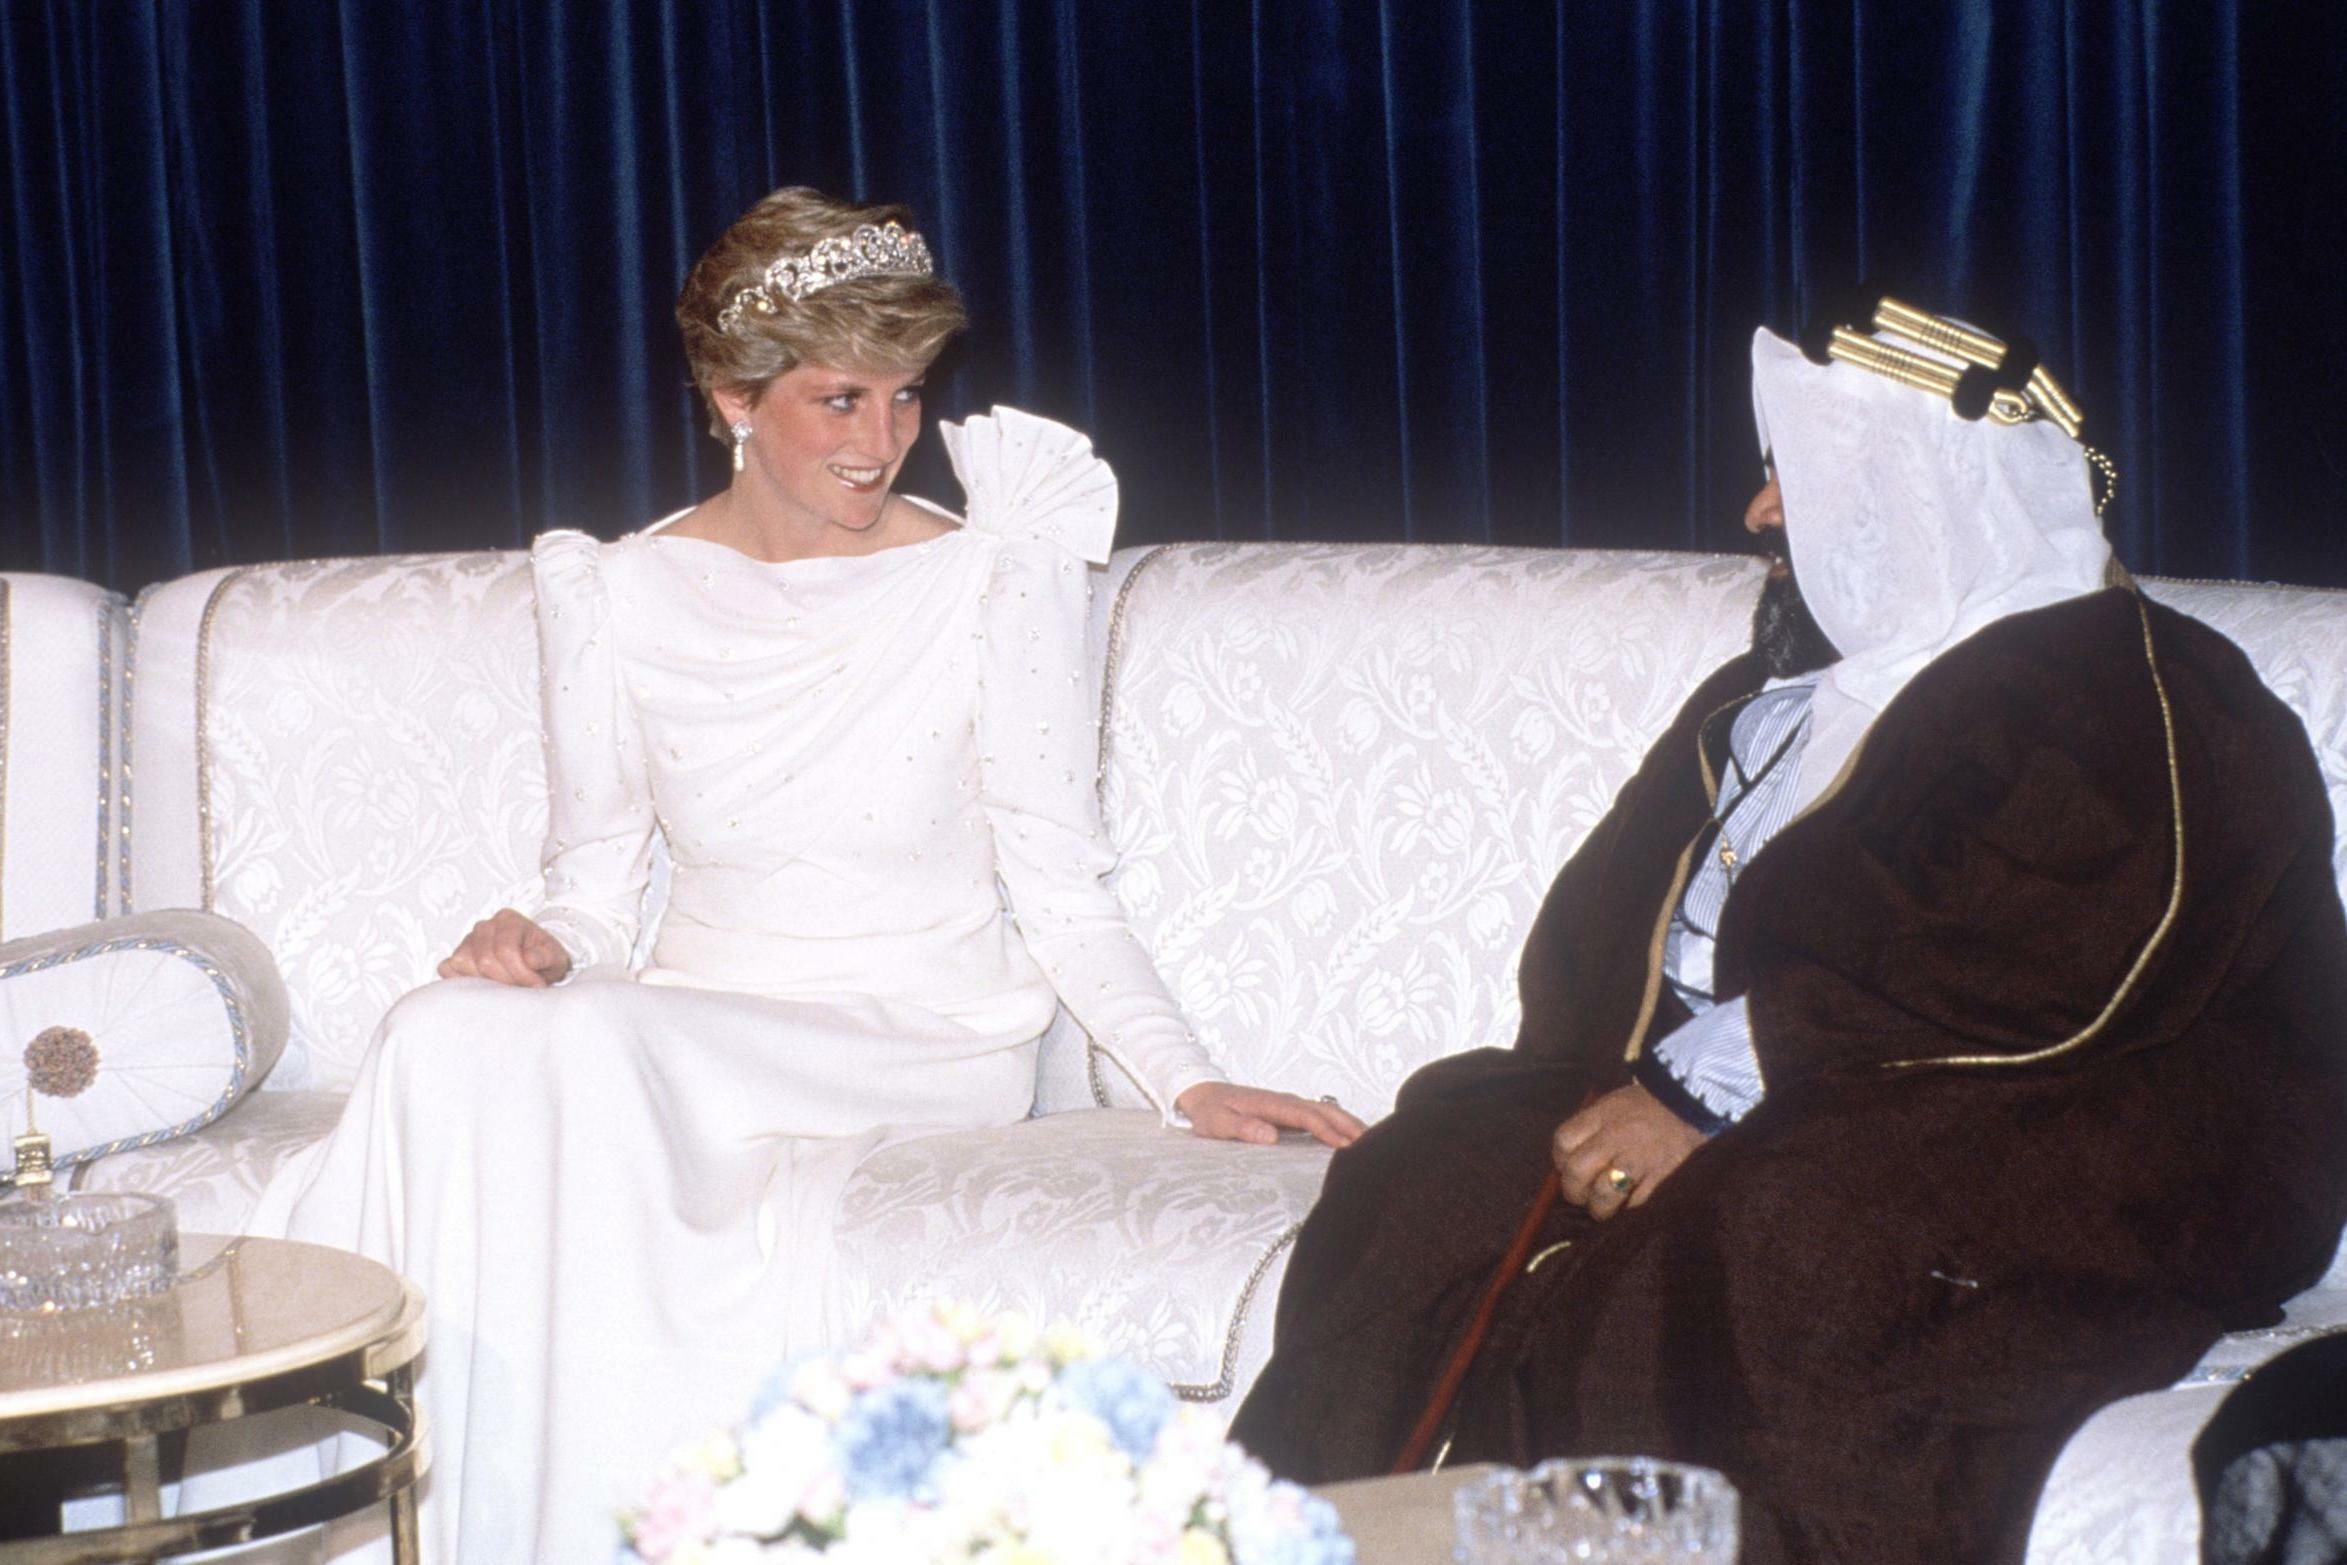 Diana dazzles in white frock and tiara during trip to the Middle East.